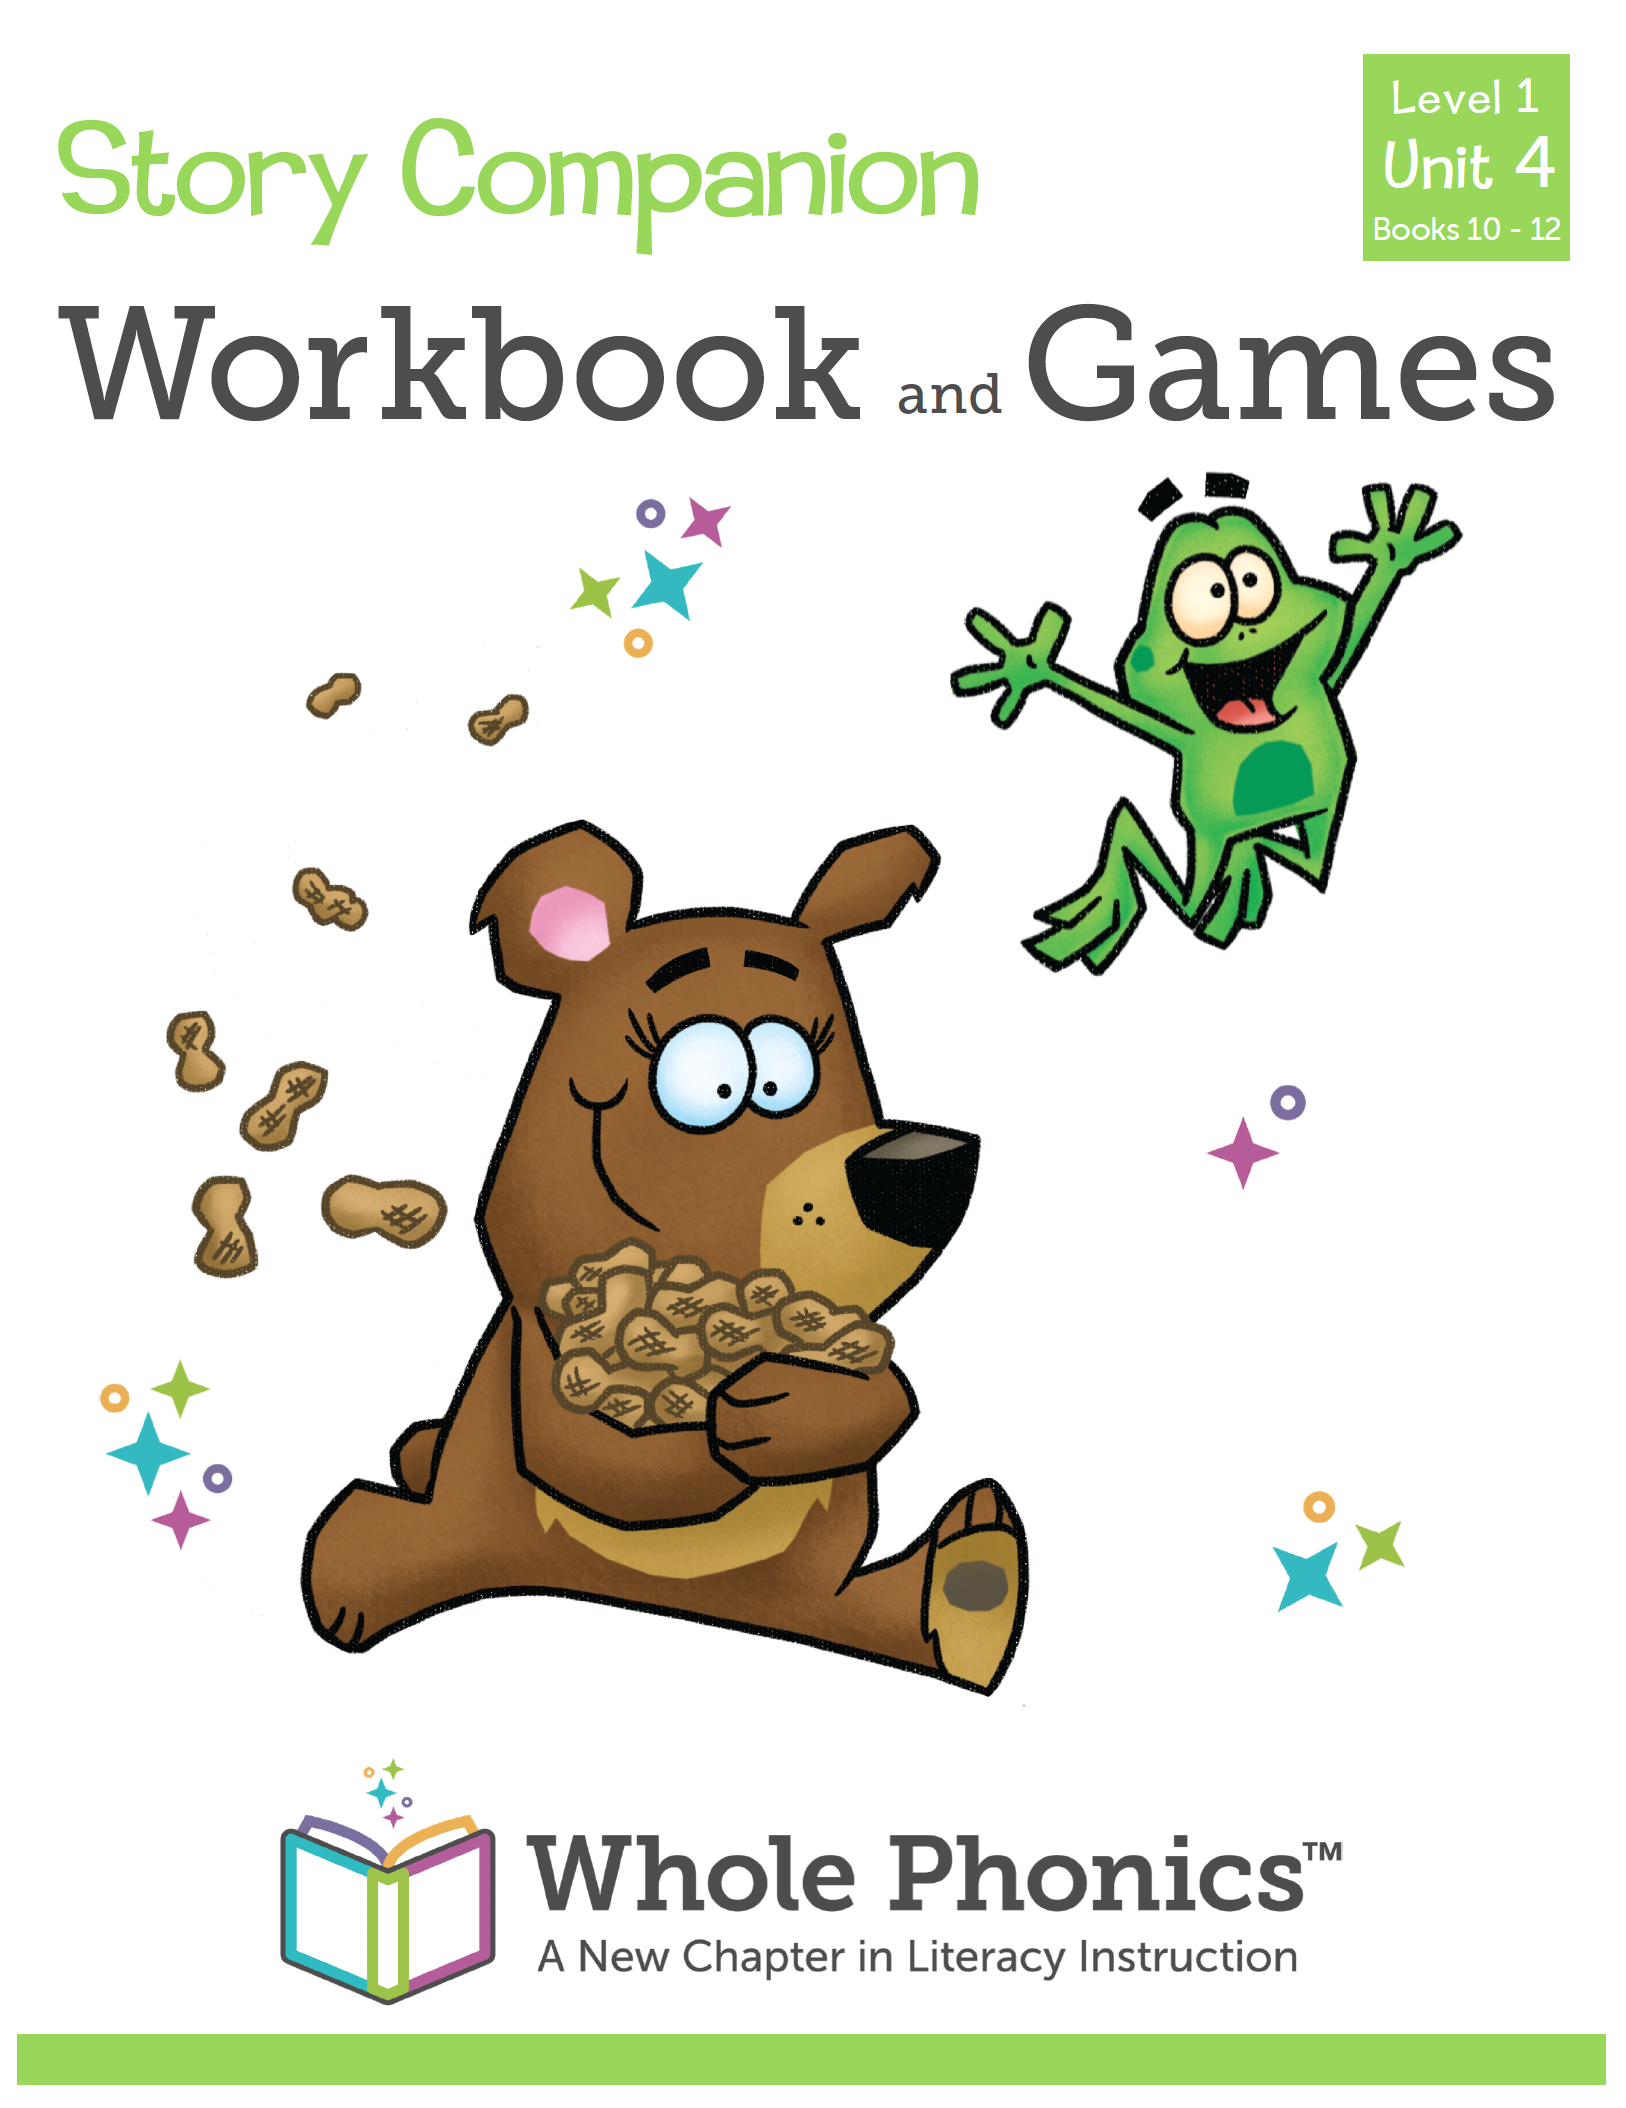 Unit 4 Workbook